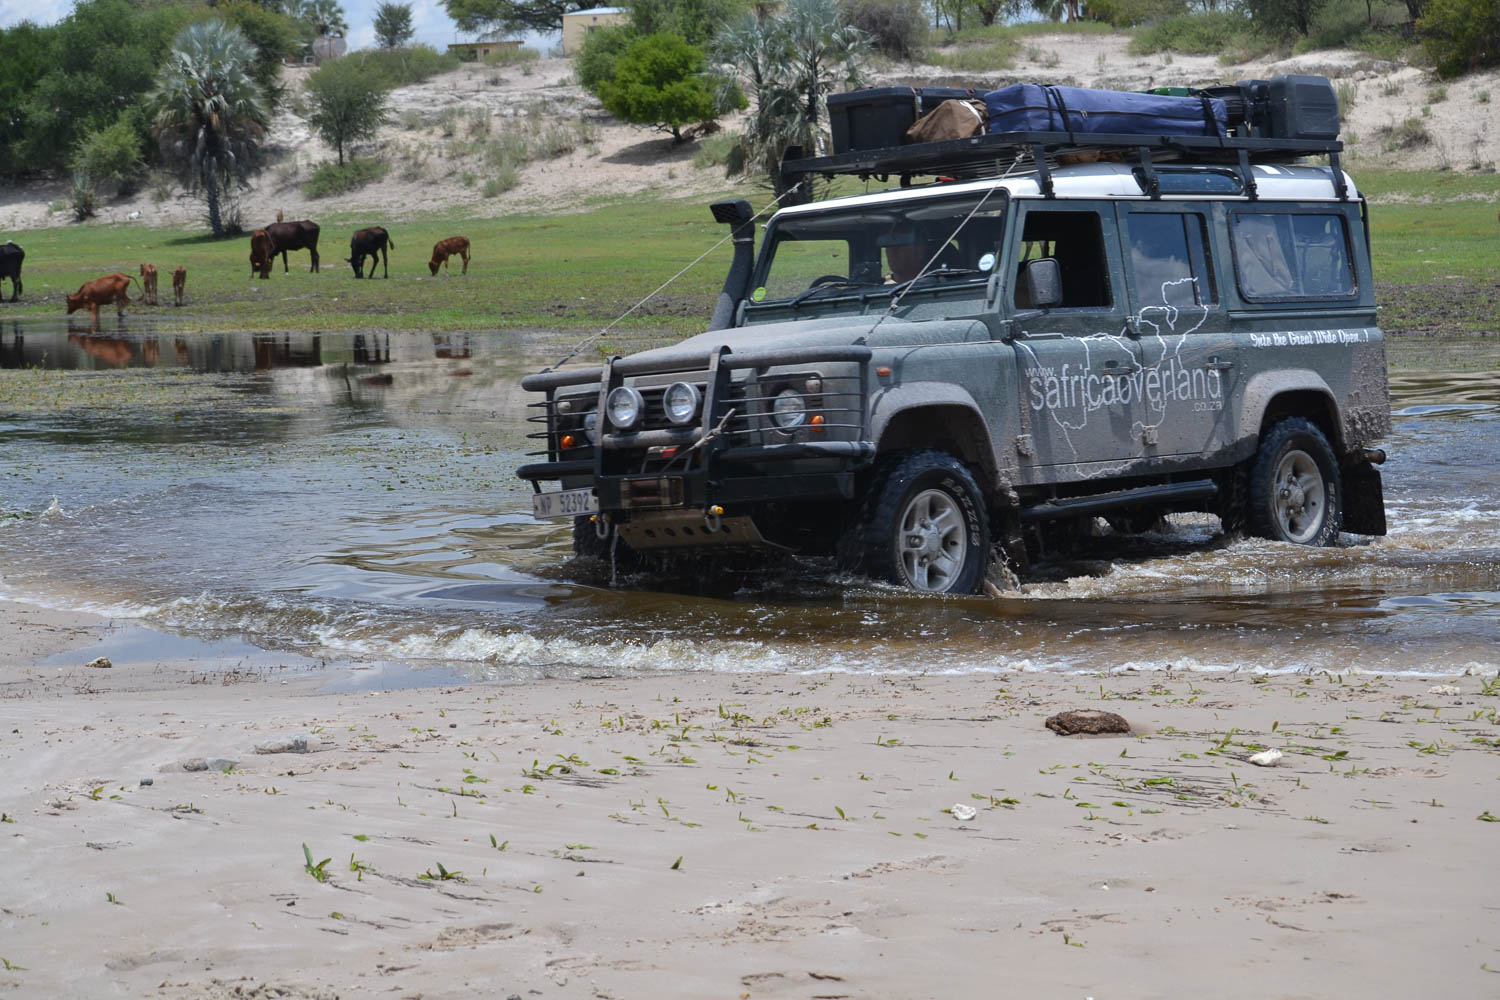 Able Landys in action with South Africa Overland 4x4 Tours